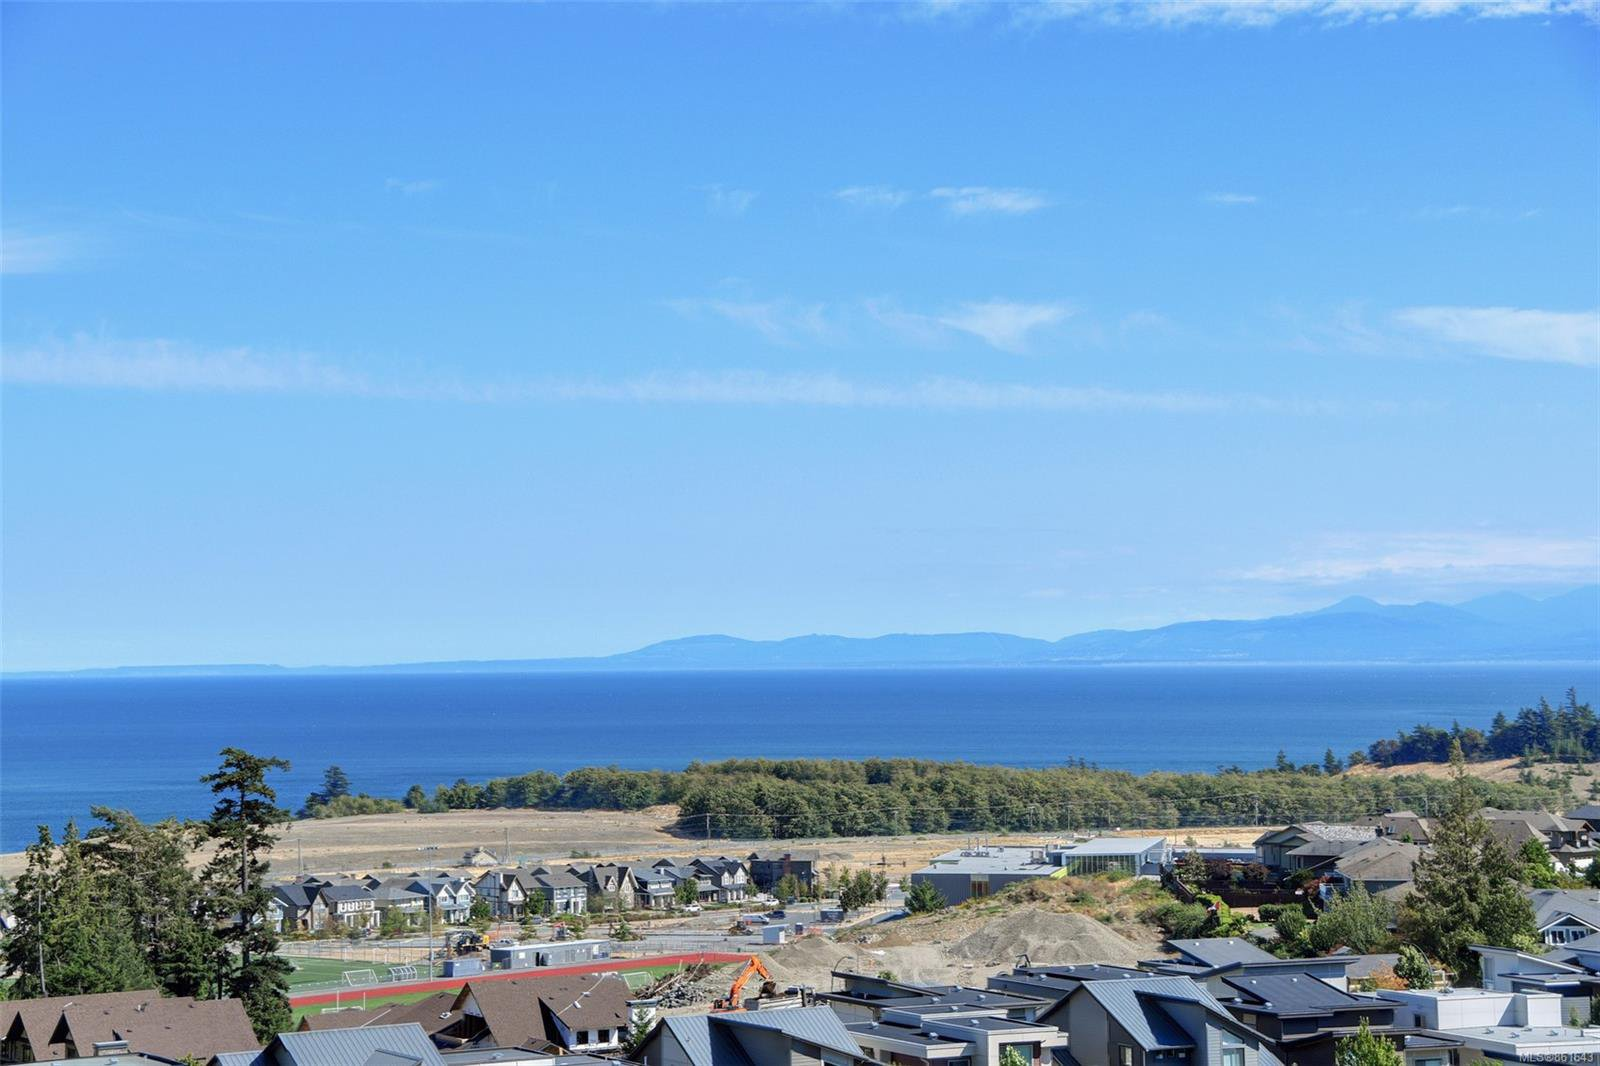 Main Photo: 3479 Oceana Lane in : Co Wishart North House for sale (Colwood)  : MLS®# 861643